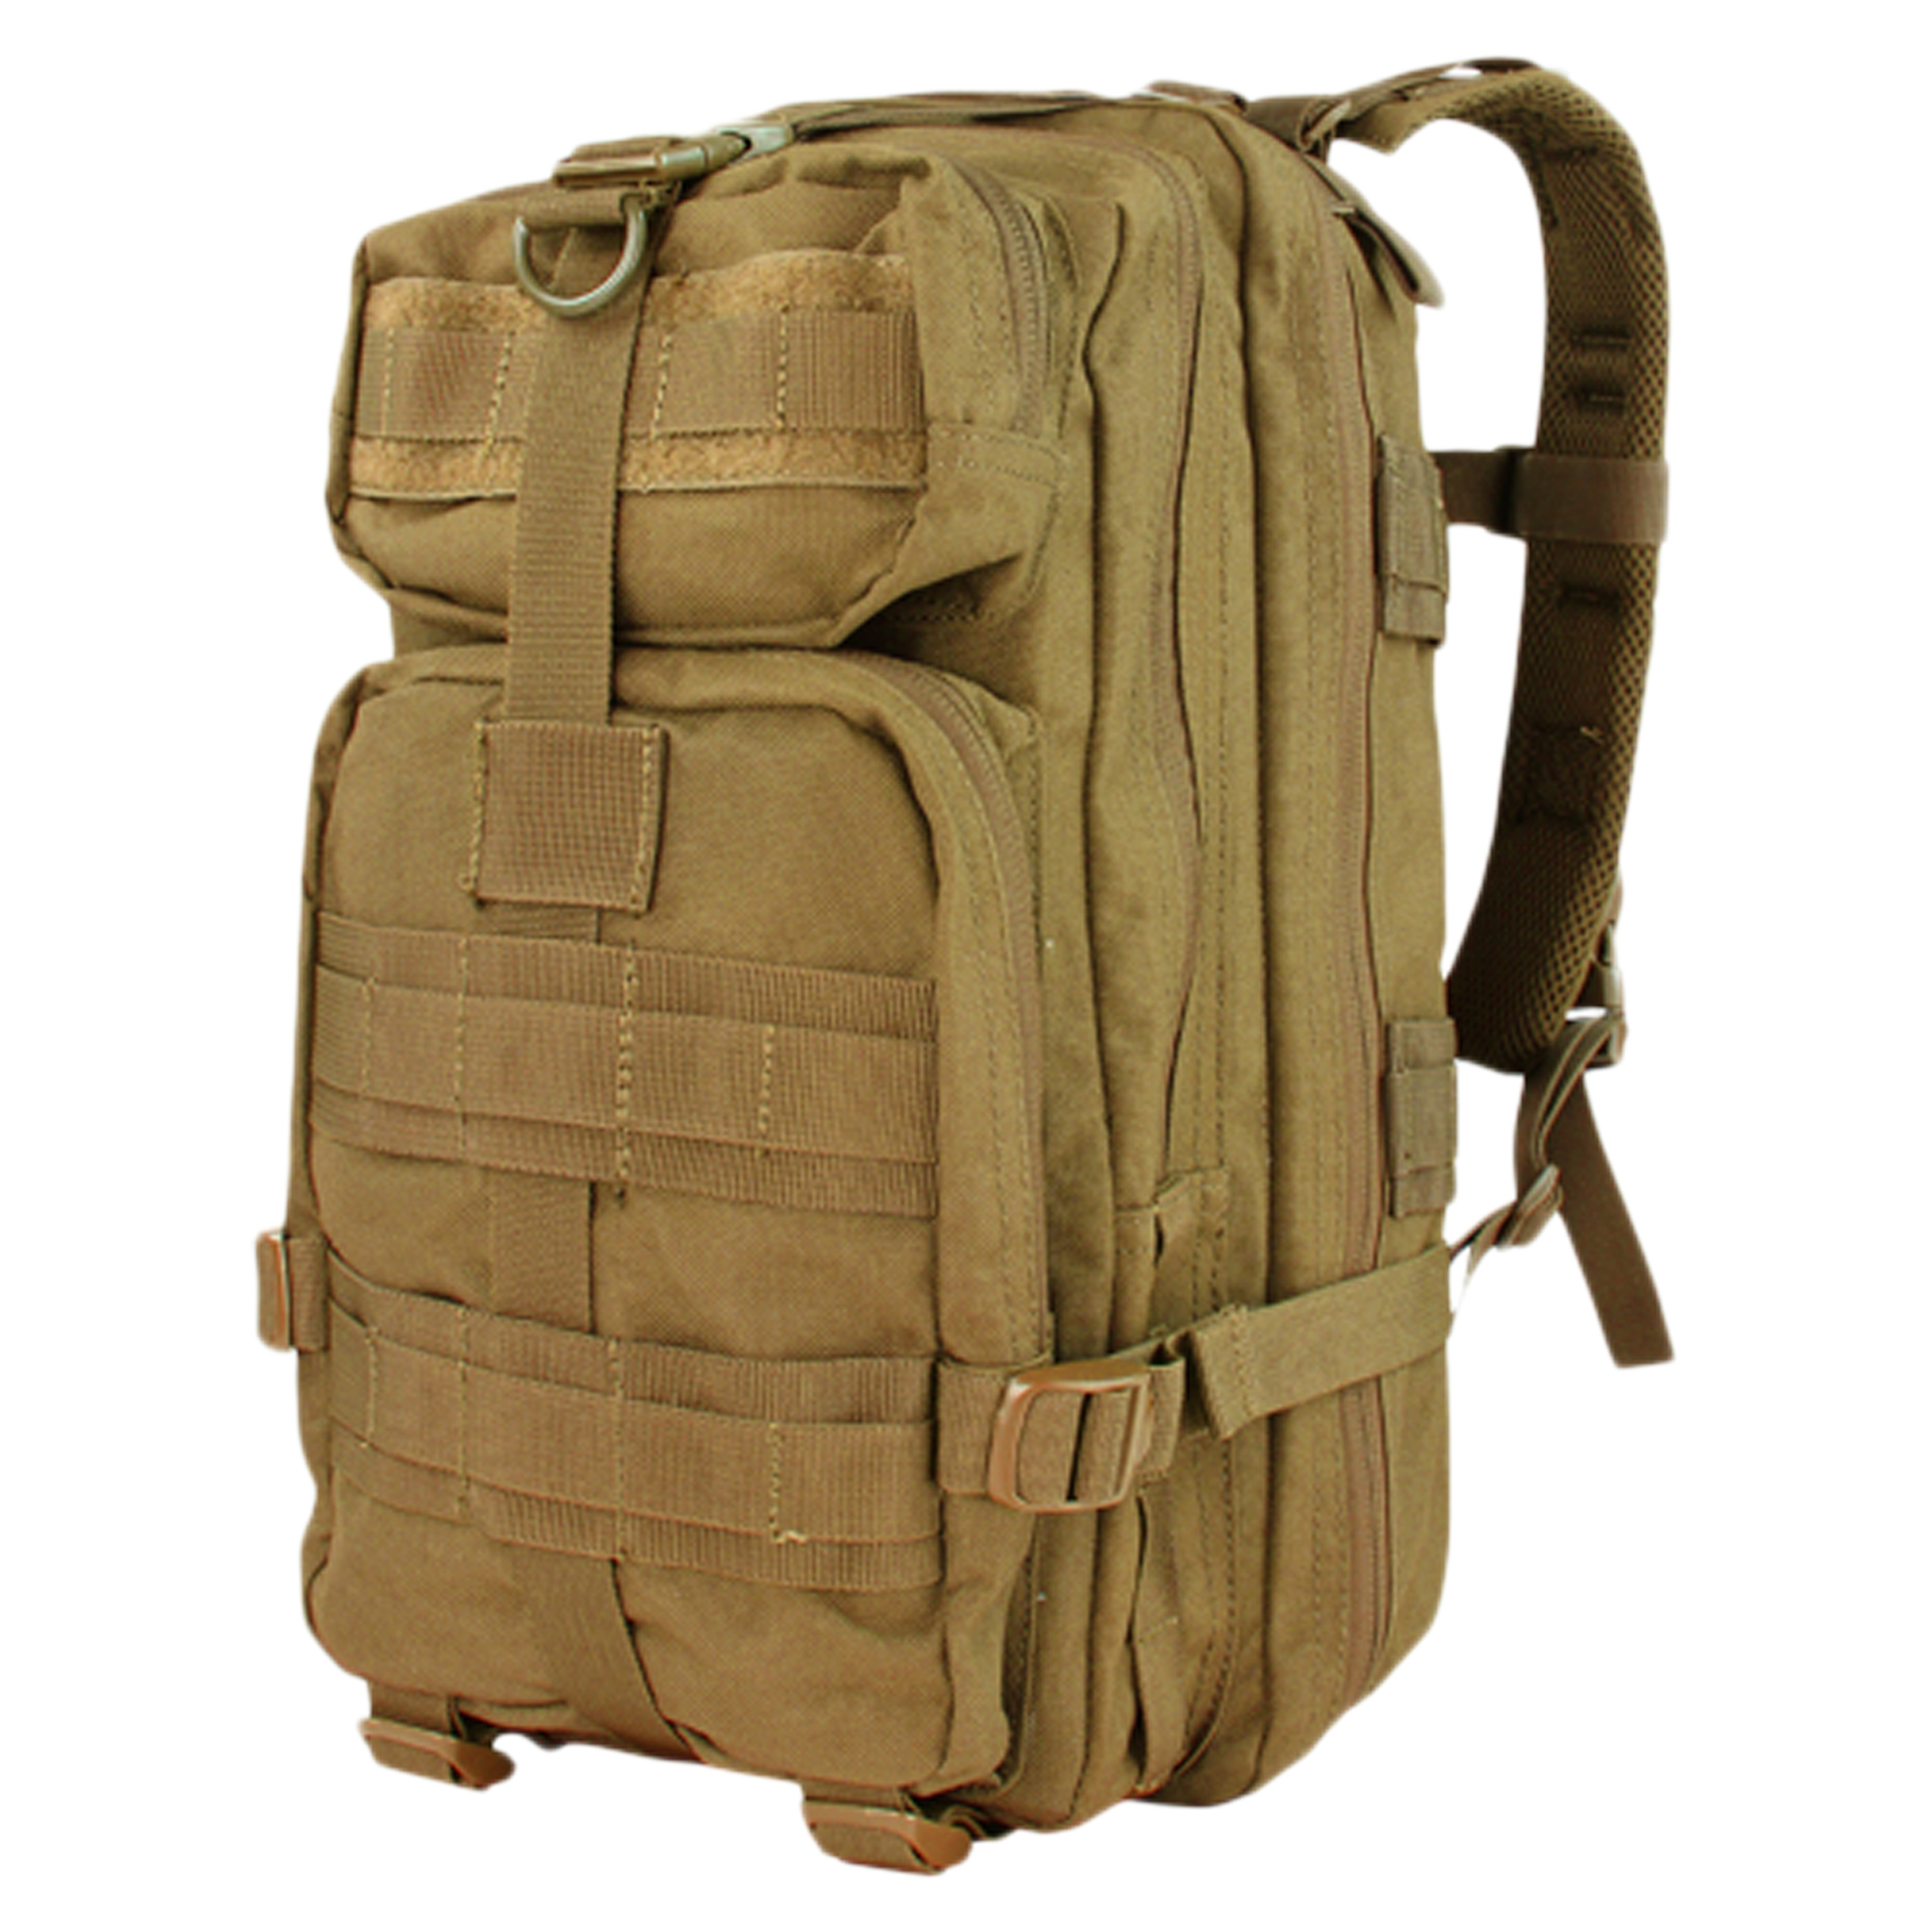 Condor Backpack Assault Pack Compact coyote brown